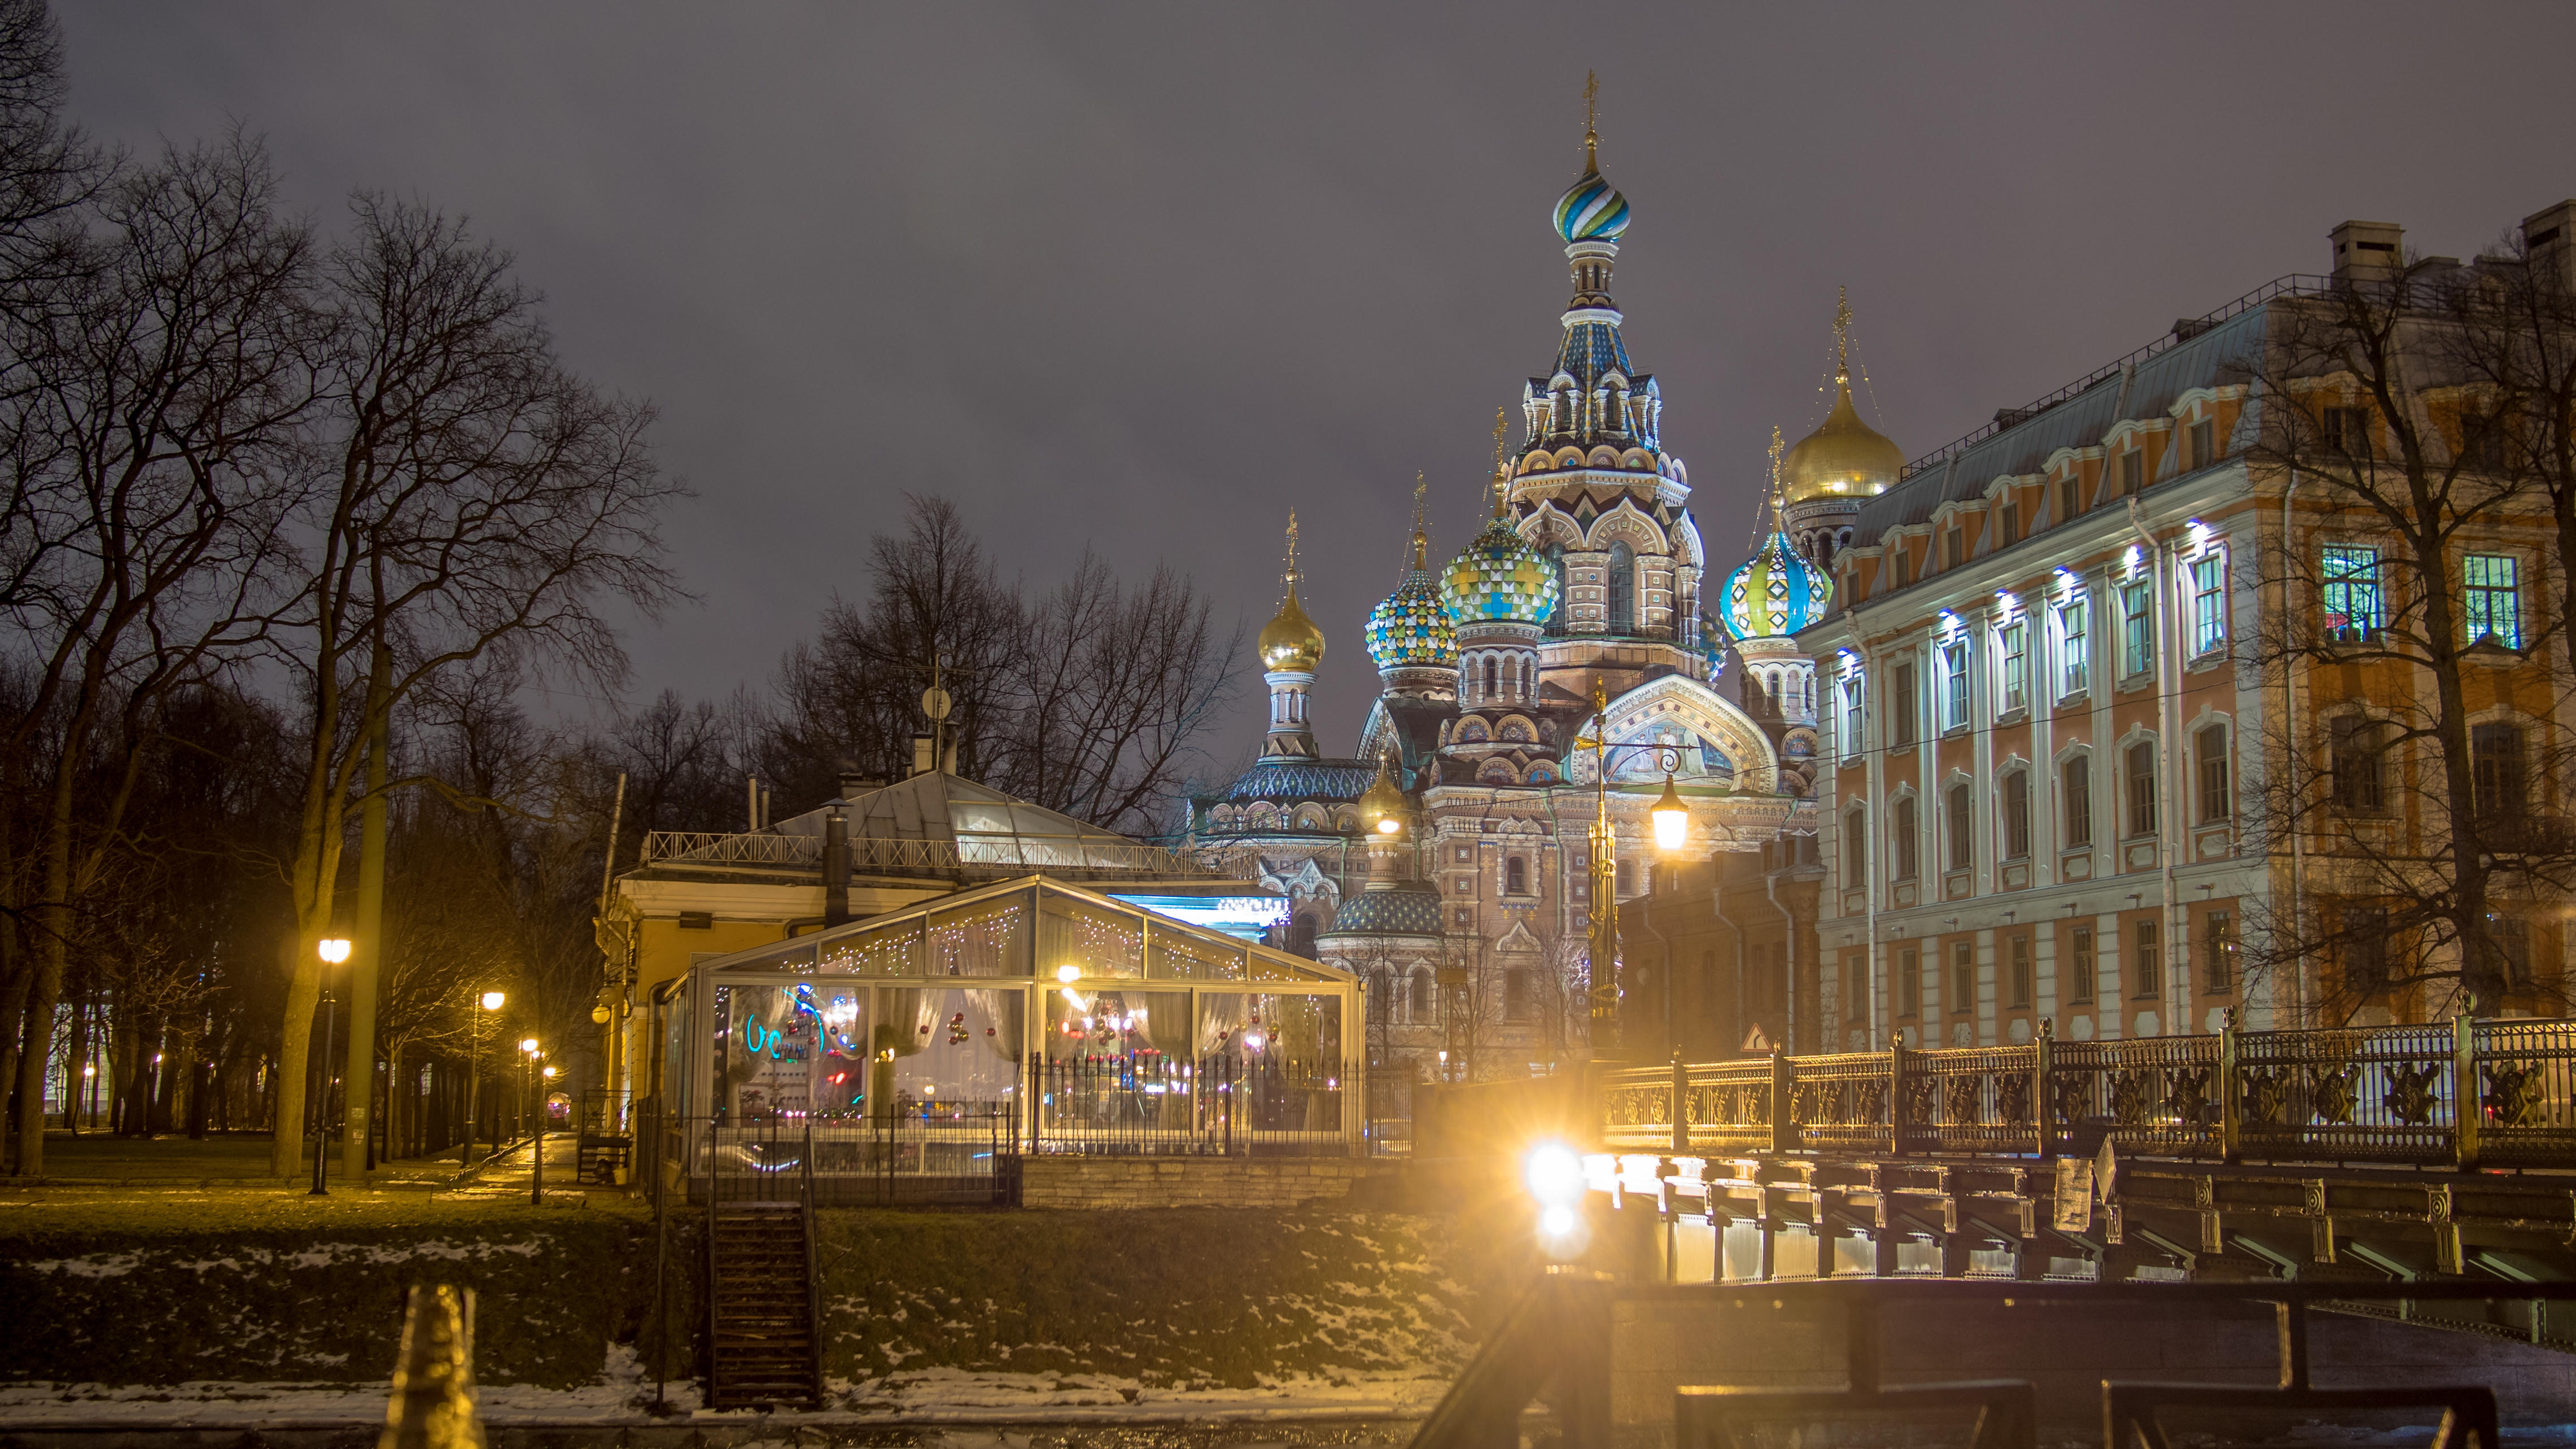 The Church of the Savior on Spilled Blood, St Petersburgh